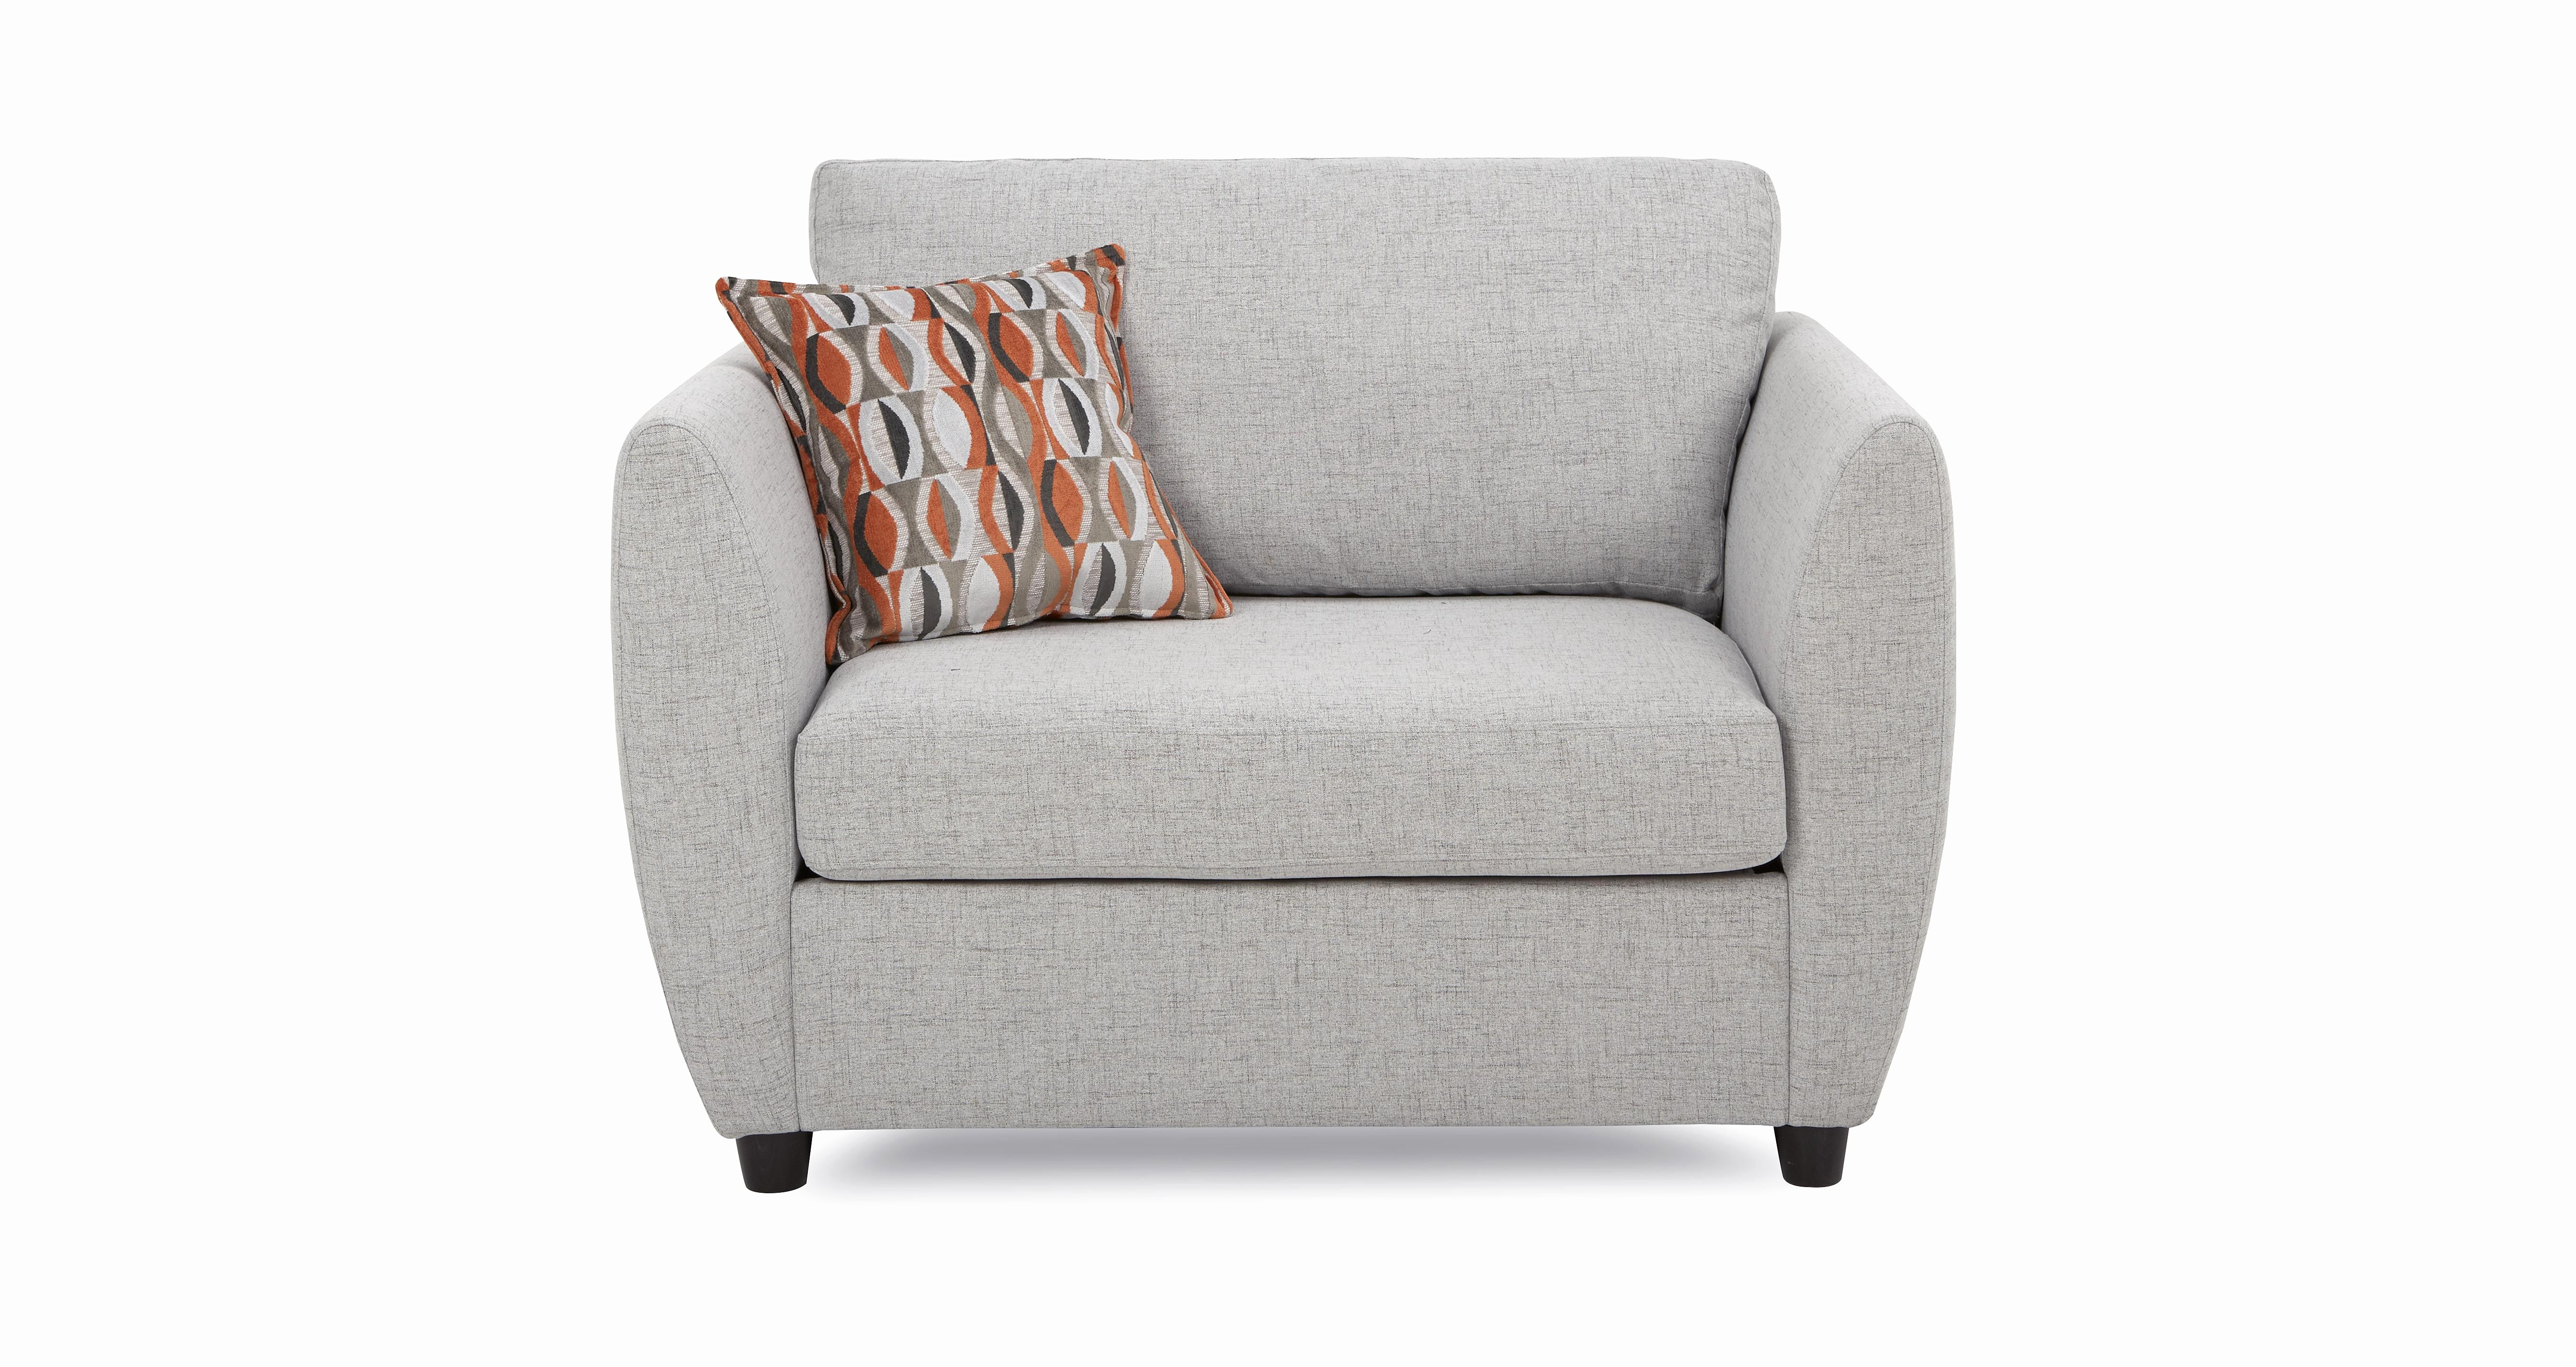 Beautiful sofa Chairs for Bedroom Shot Sofa Chairs for Bedroom